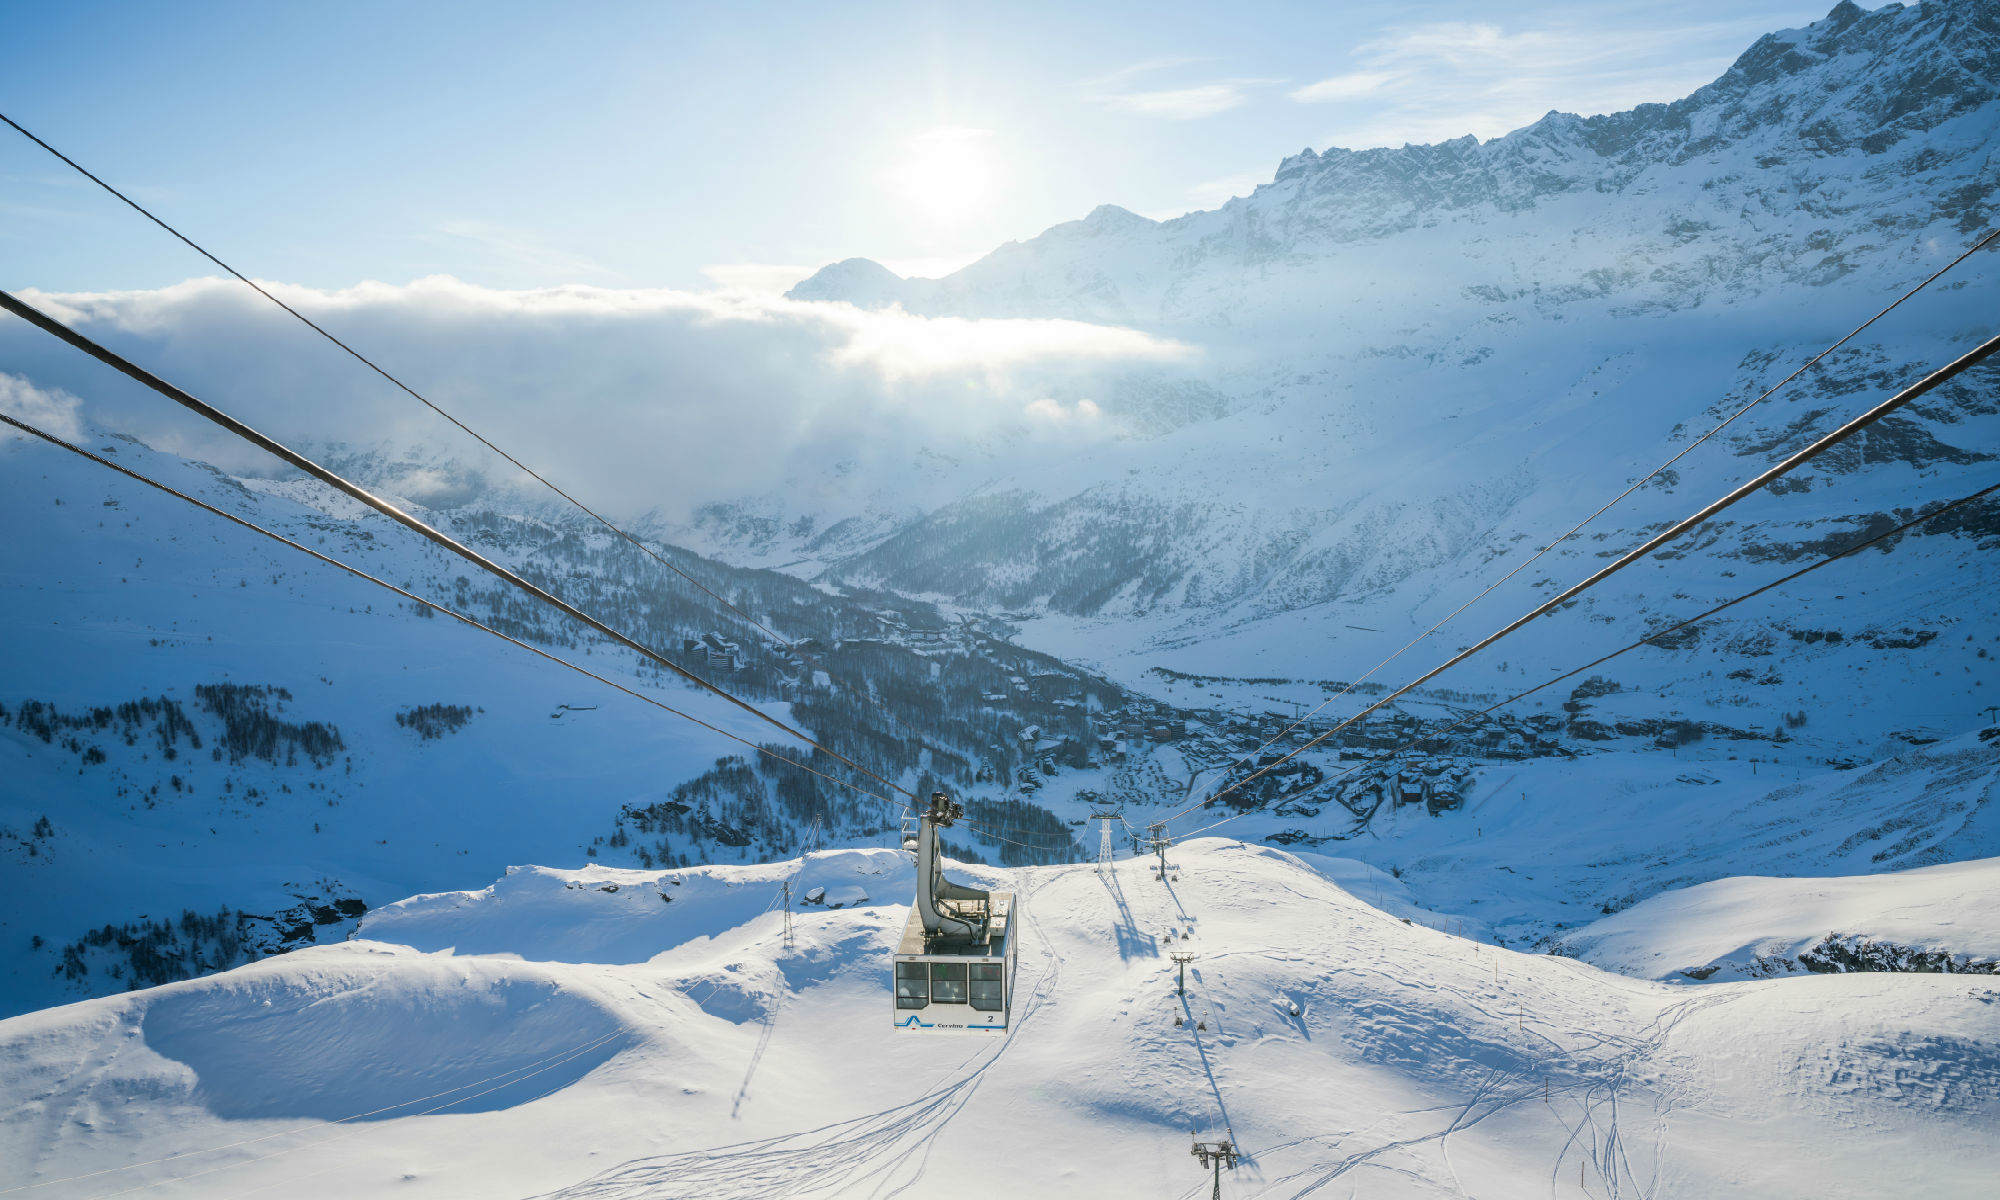 Beautiful view from high up of the pistes at Breuil-Cervinia.